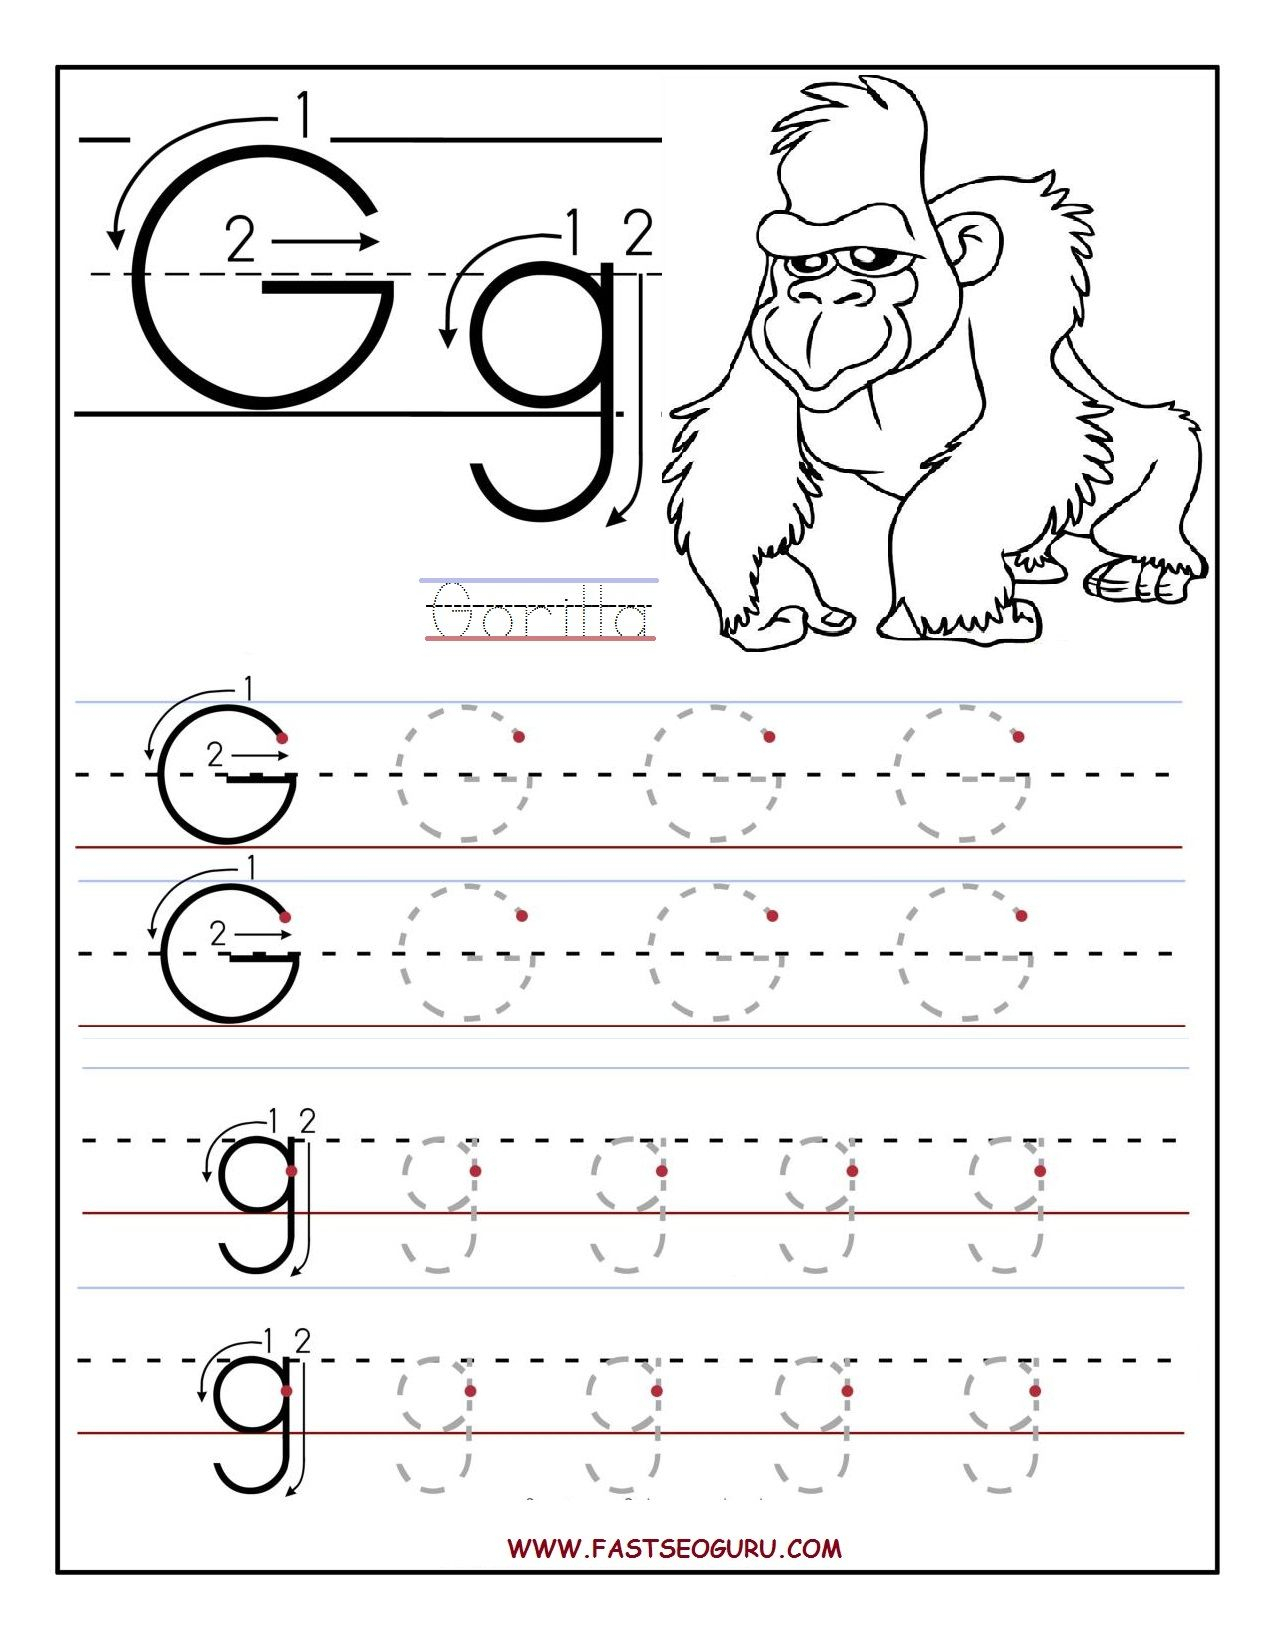 Worksheets For Preschoolers | Printable Letter G Tracing throughout Letter G Worksheets For Preschool